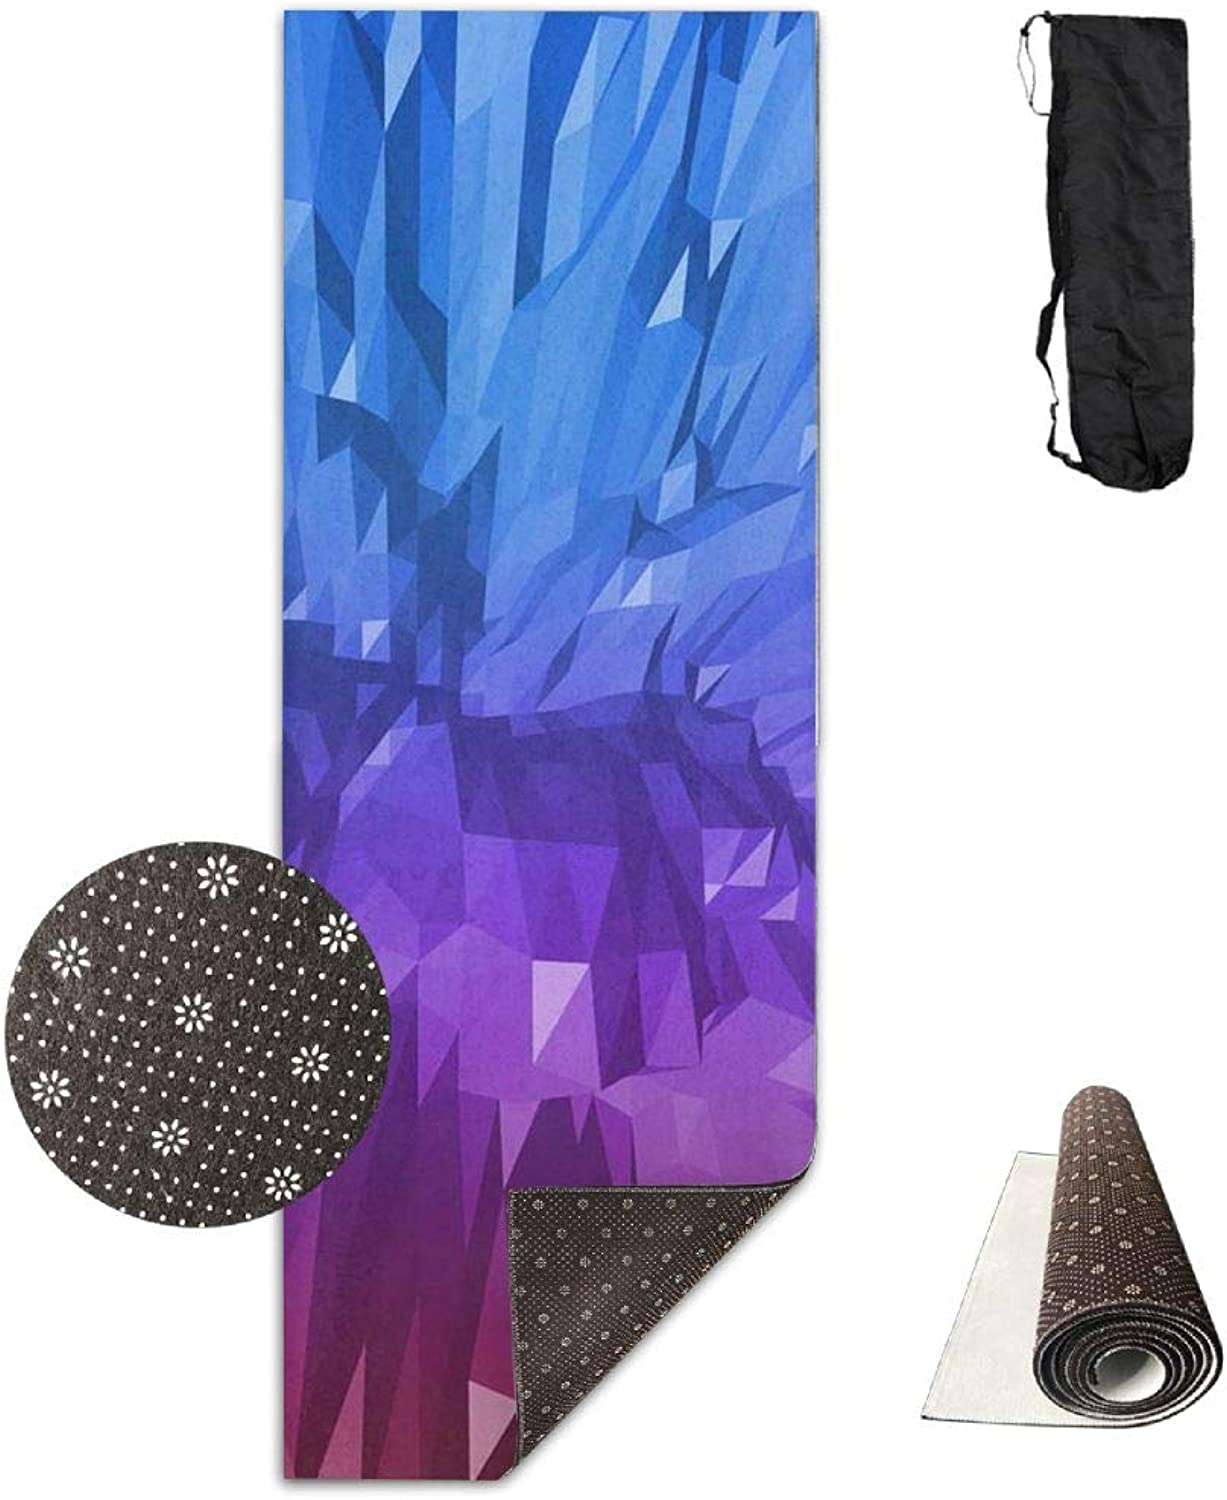 Yoga Mat Non Slip 24  X 71  Exercise Mats Abstract Crystal Premium Fitness Pilates Carrying Strap